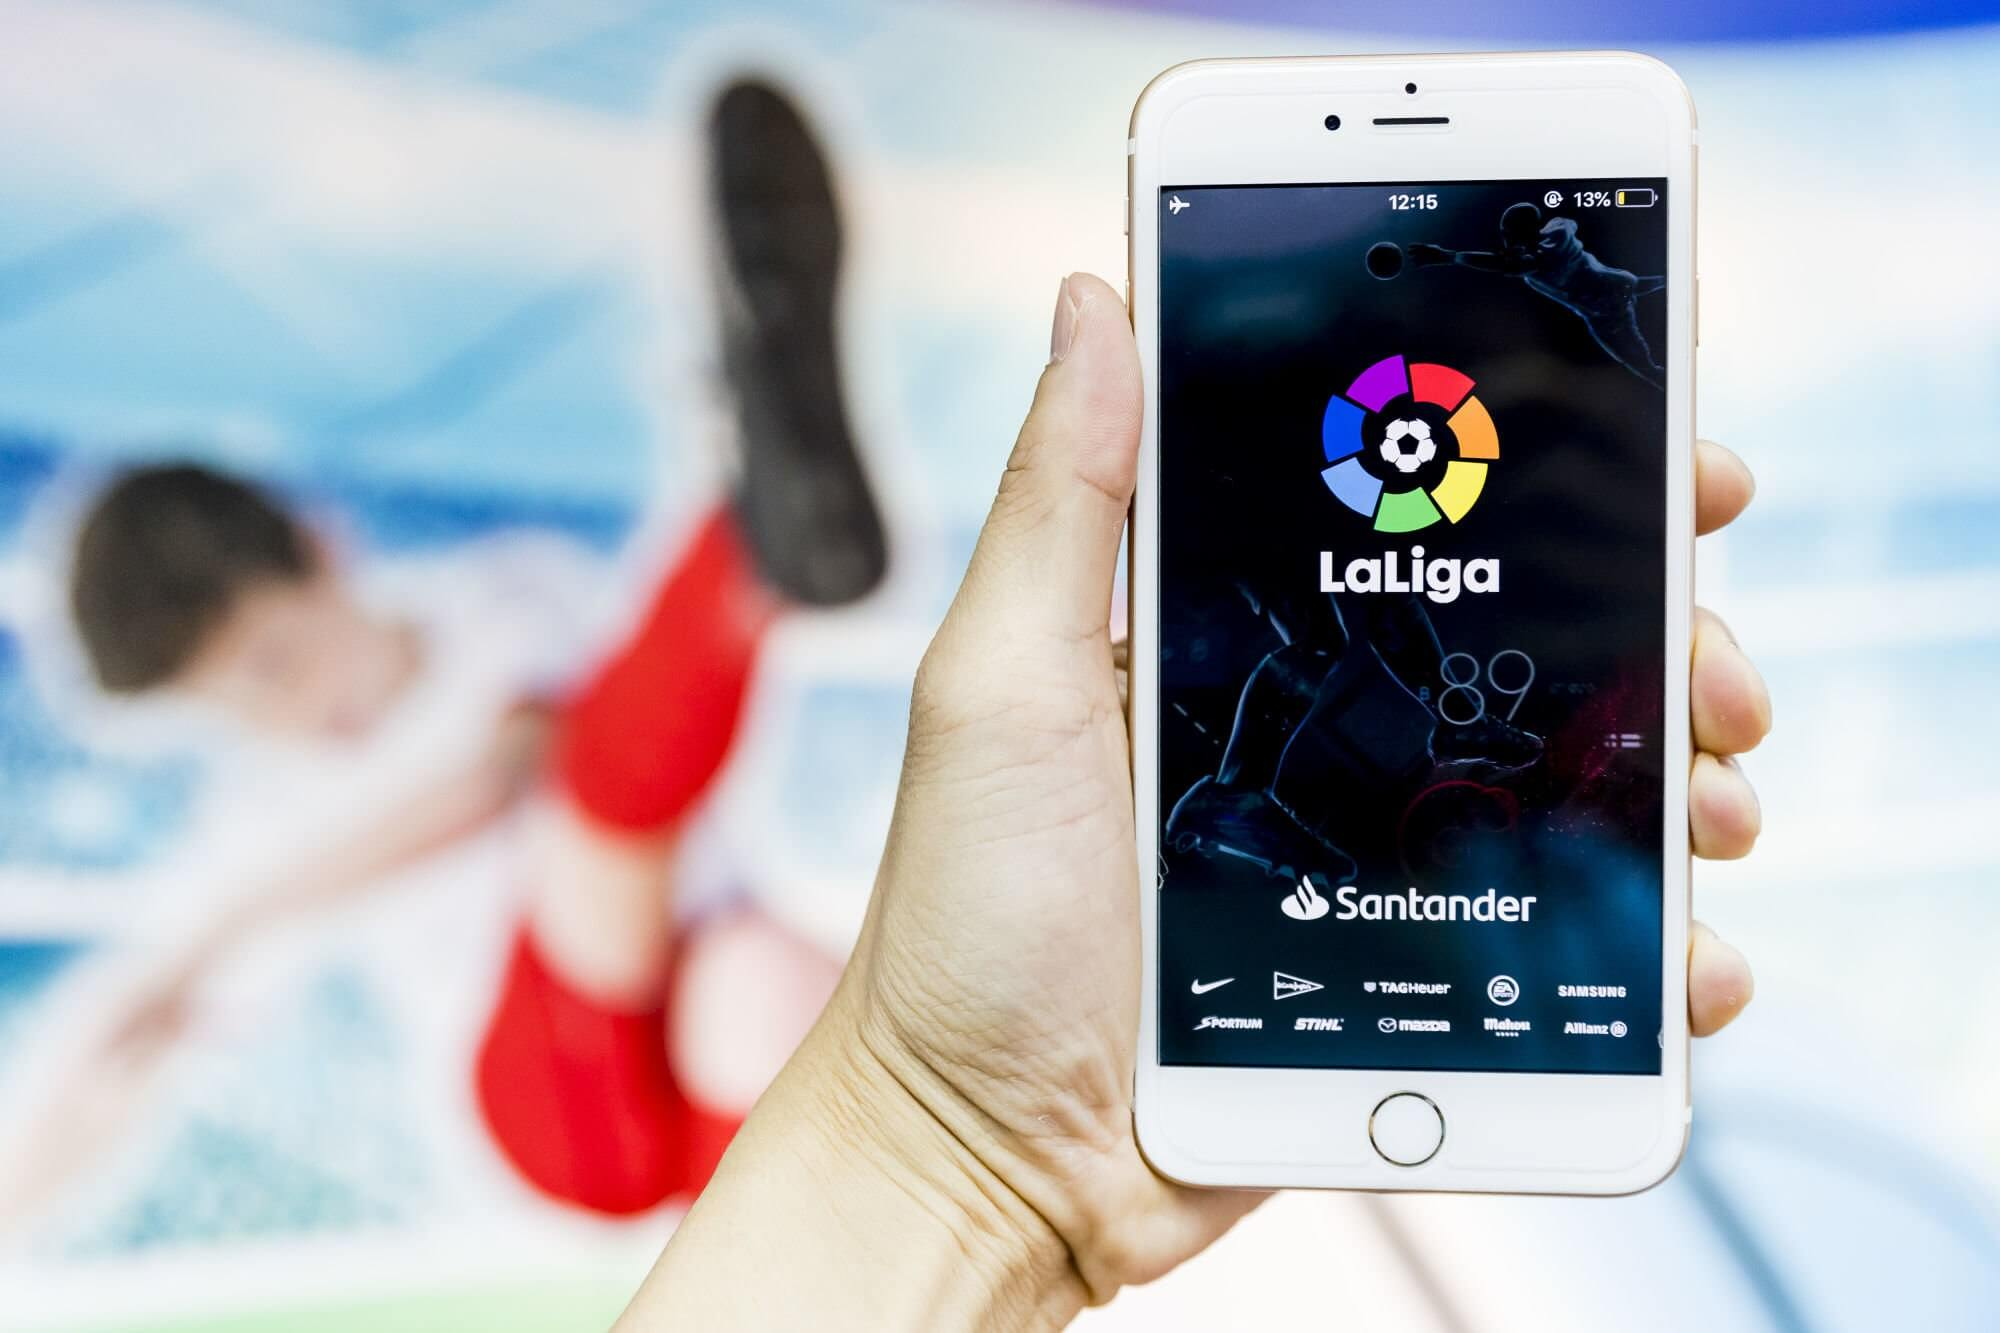 La Liga fined €250k for using fan app to detect illegal streams